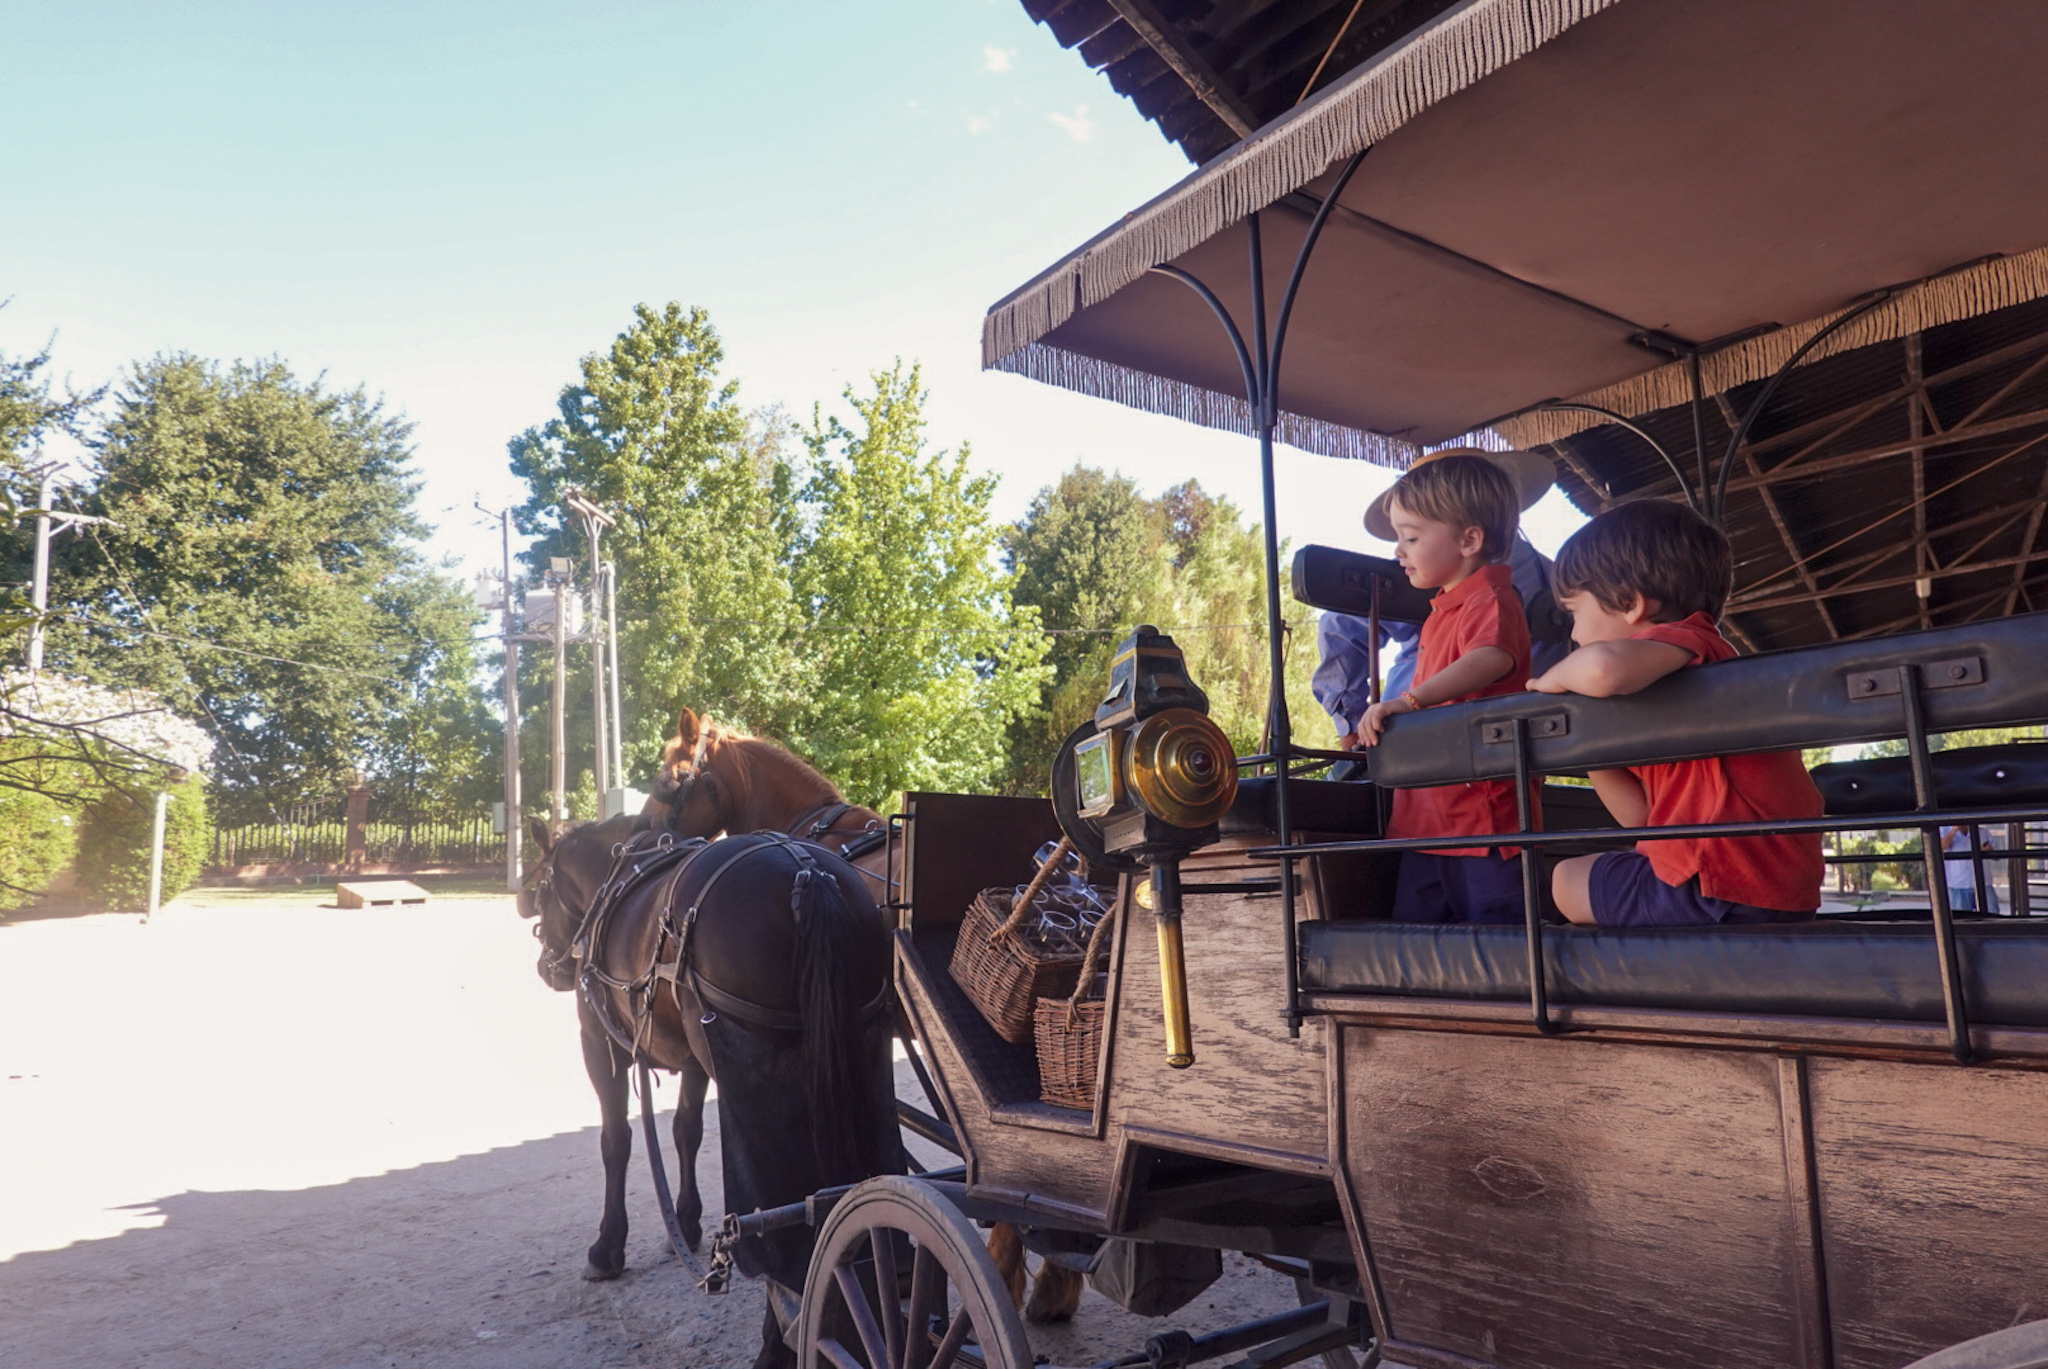 Viu Manent horse and carriage